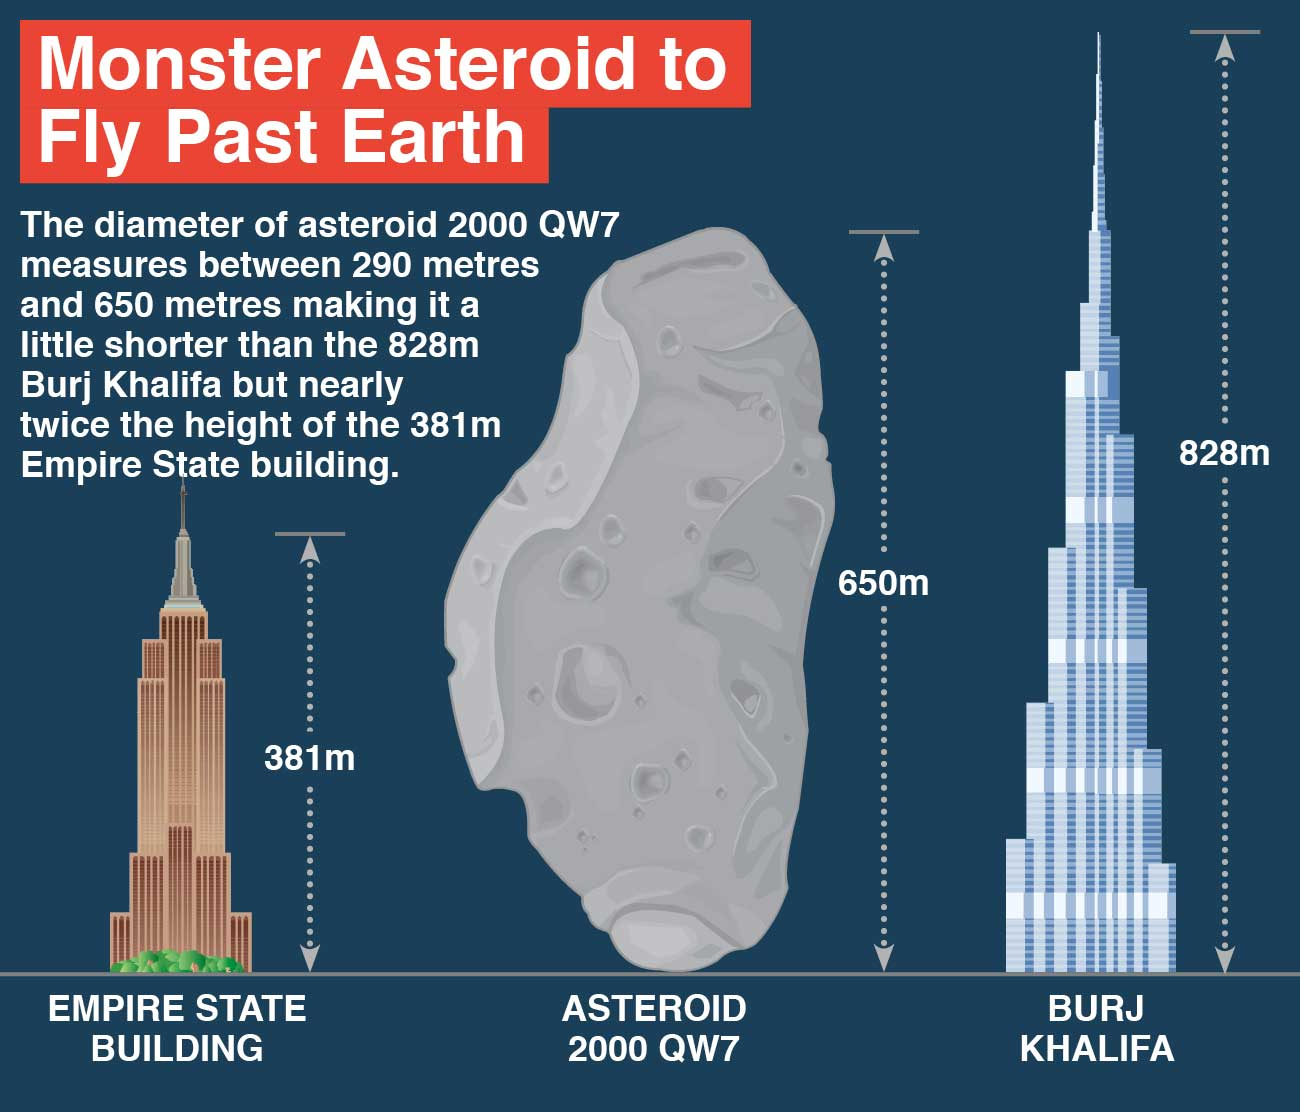 NED-221-Monster-Asteroid-to-Fly-Past-Earth - 0